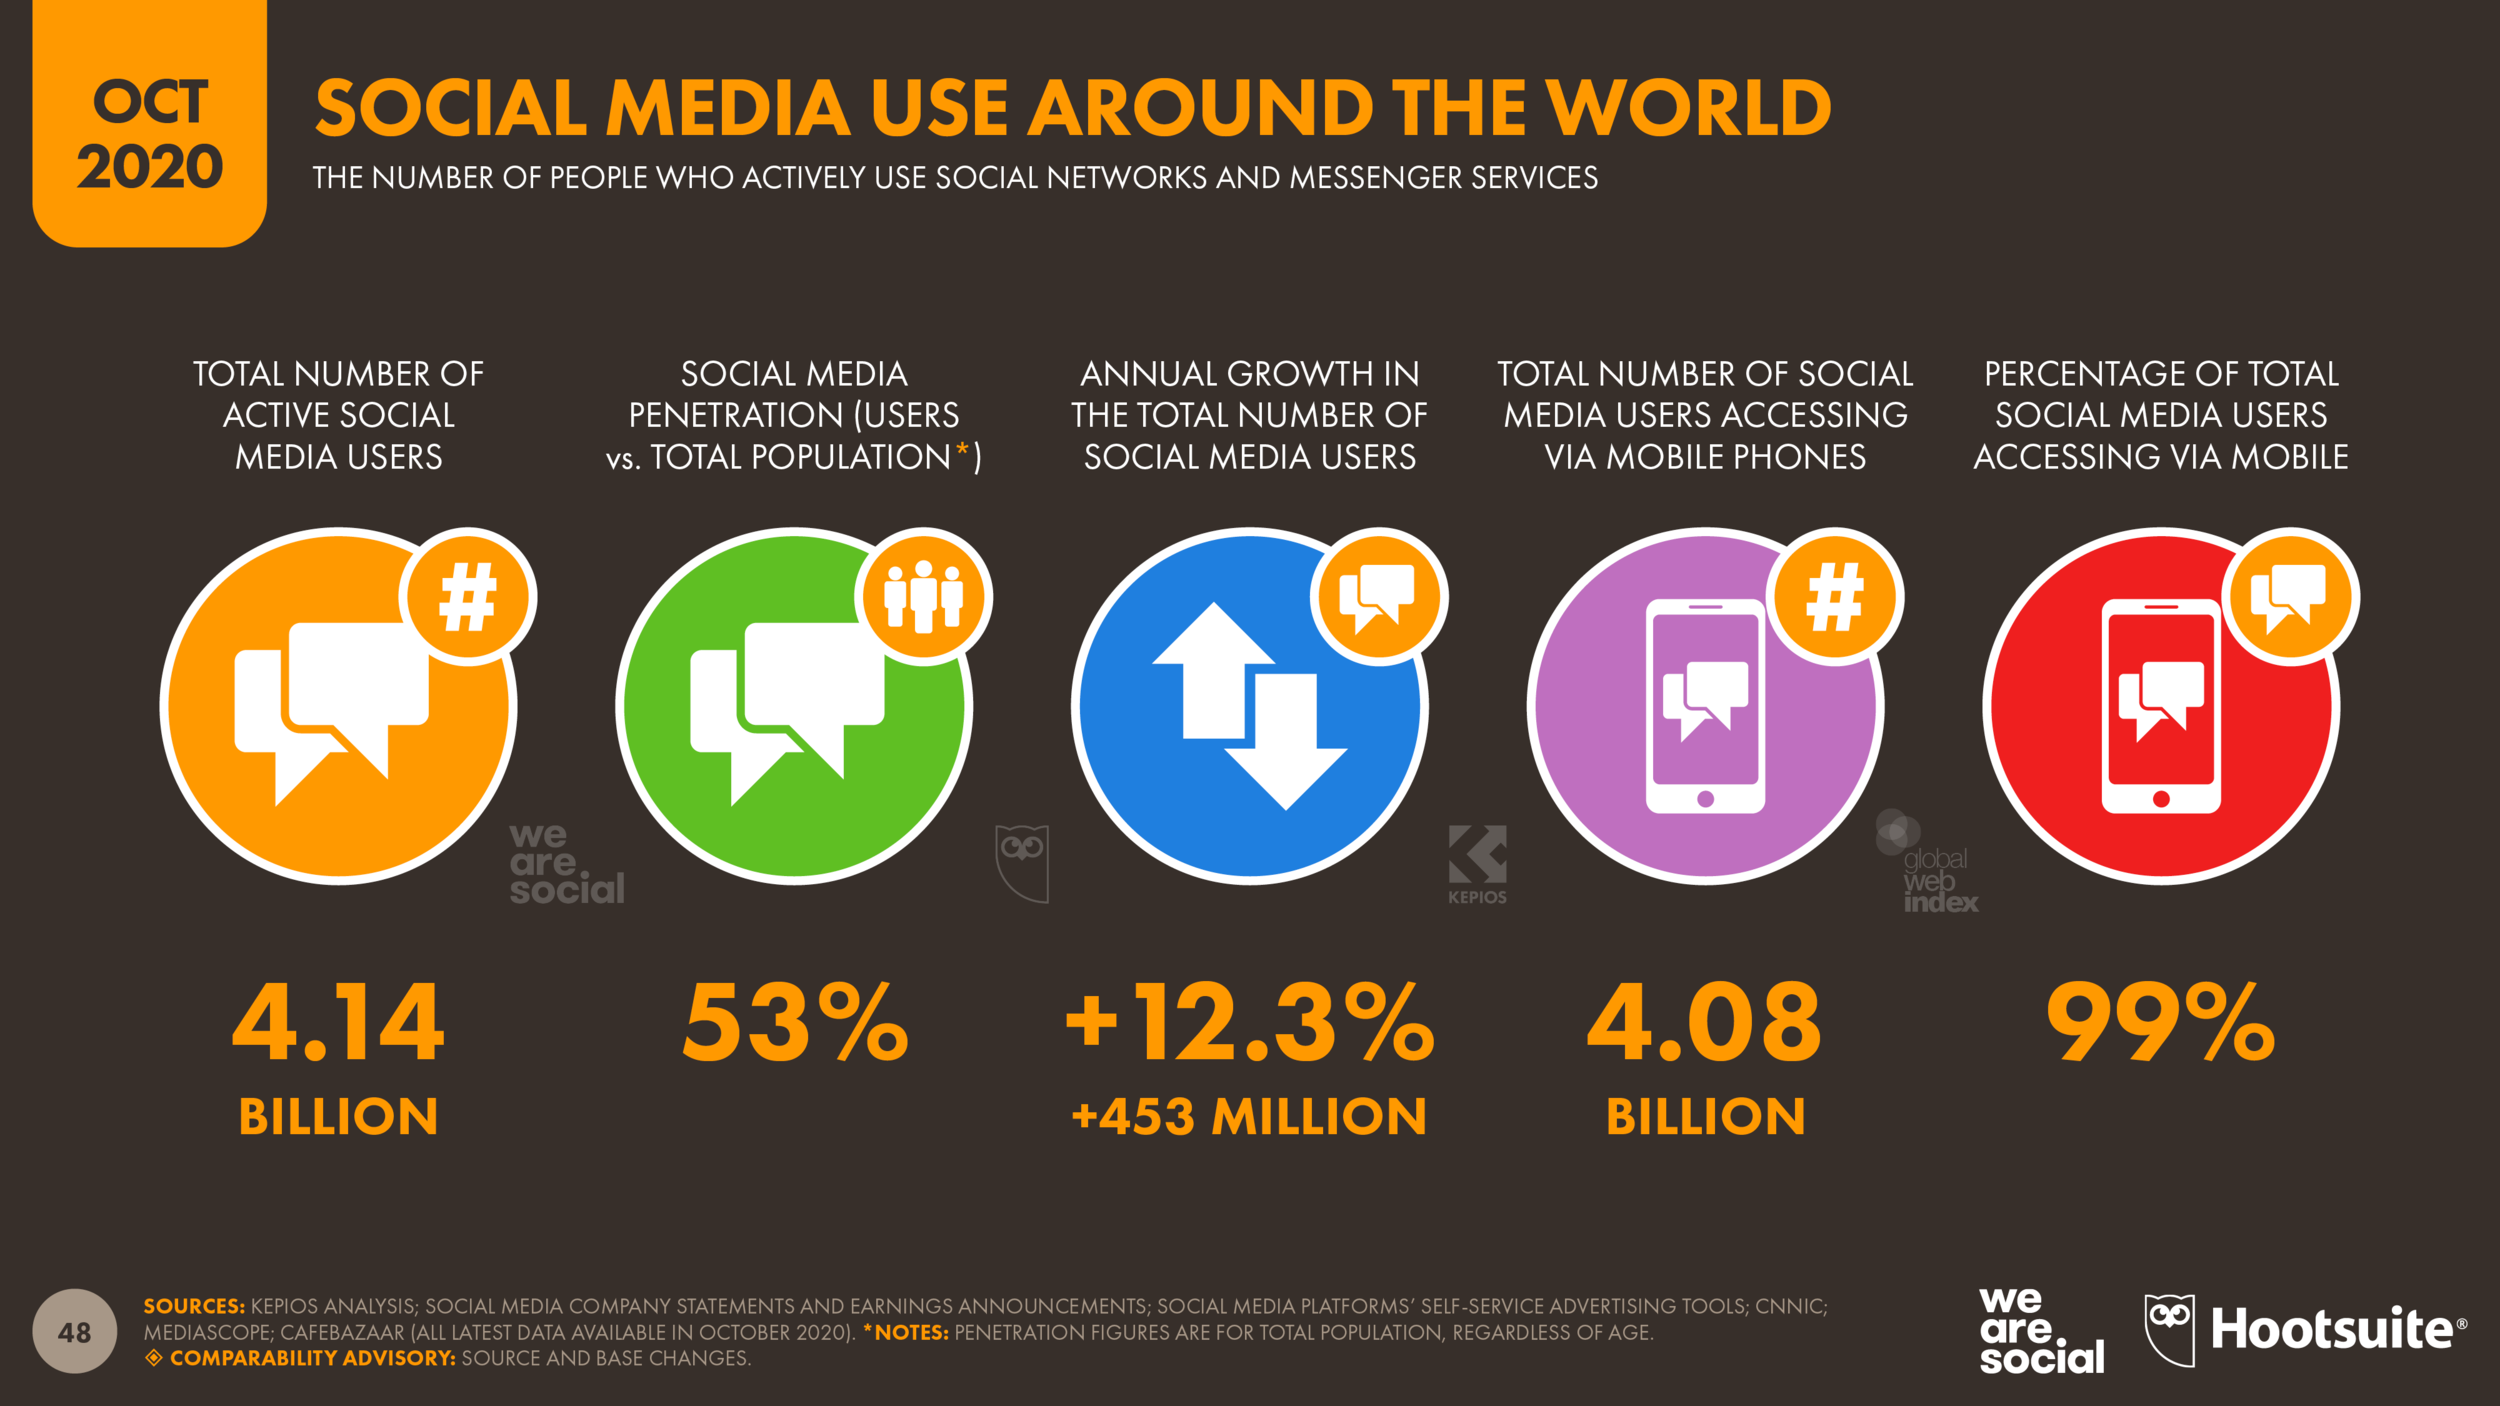 In October 2020, there are 4.14 billion active social media users worldwide.